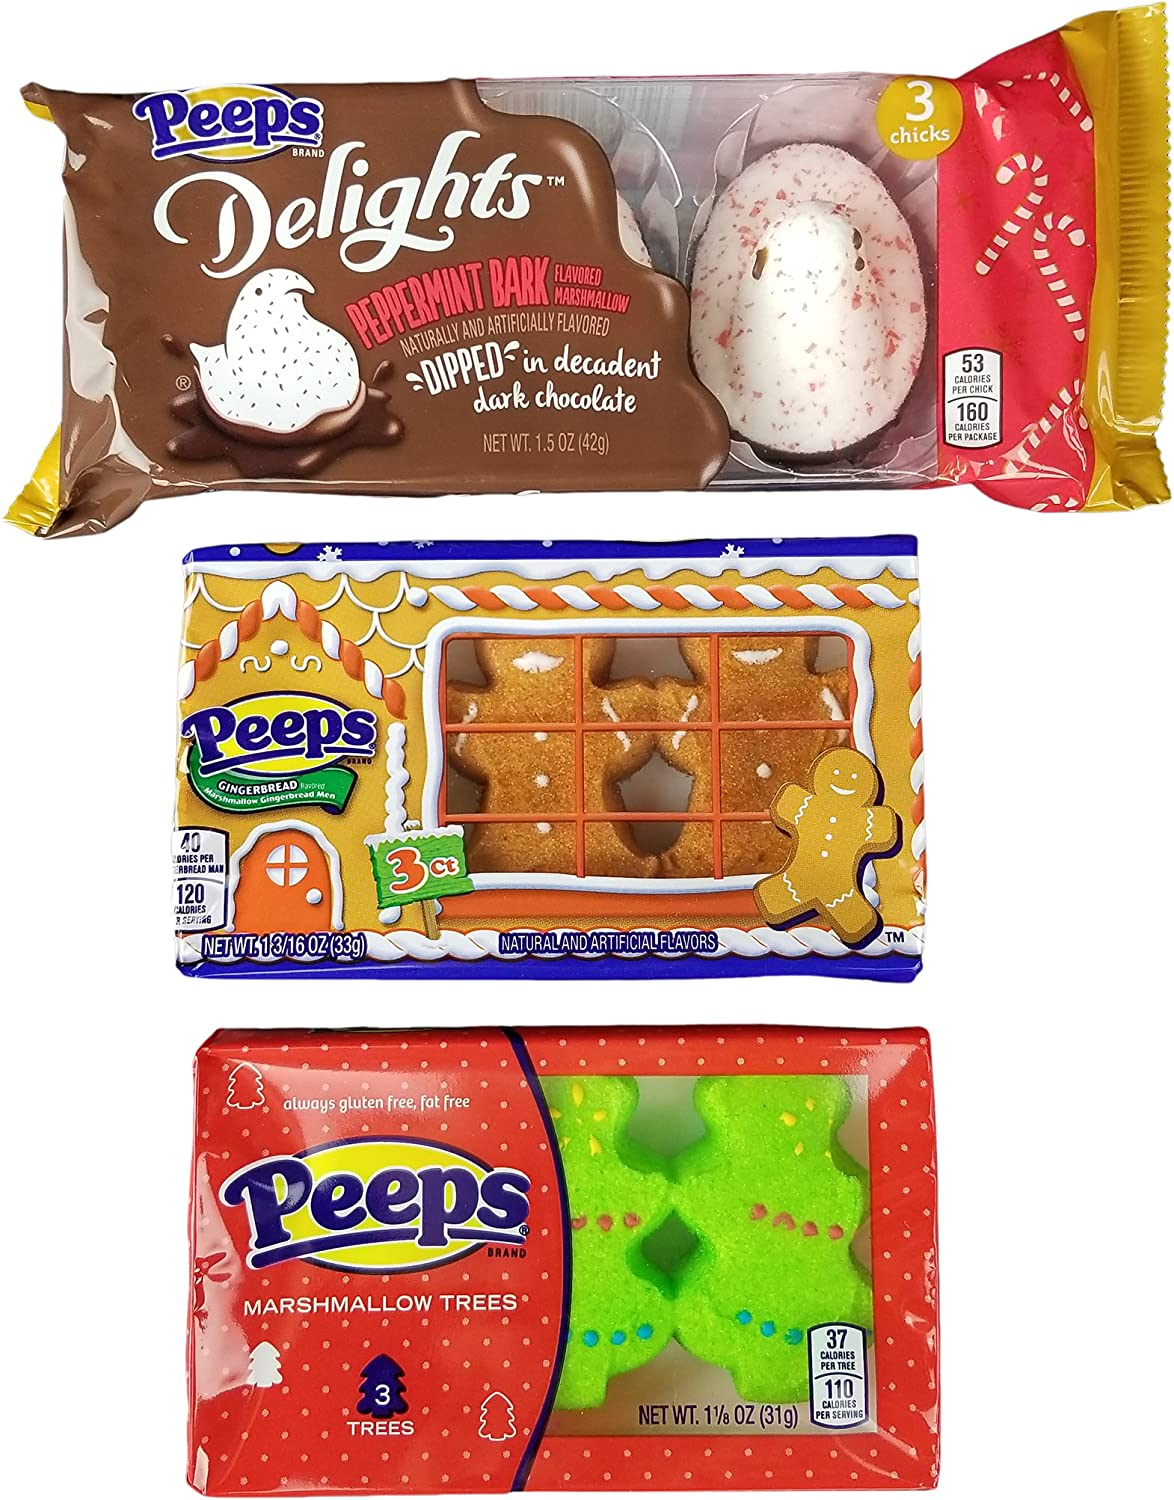 Christmas Flavors.Marshmallow Peeps Candy Chicks Christmas Variety Pack Holiday Xmas Flavors Peppermint Bark